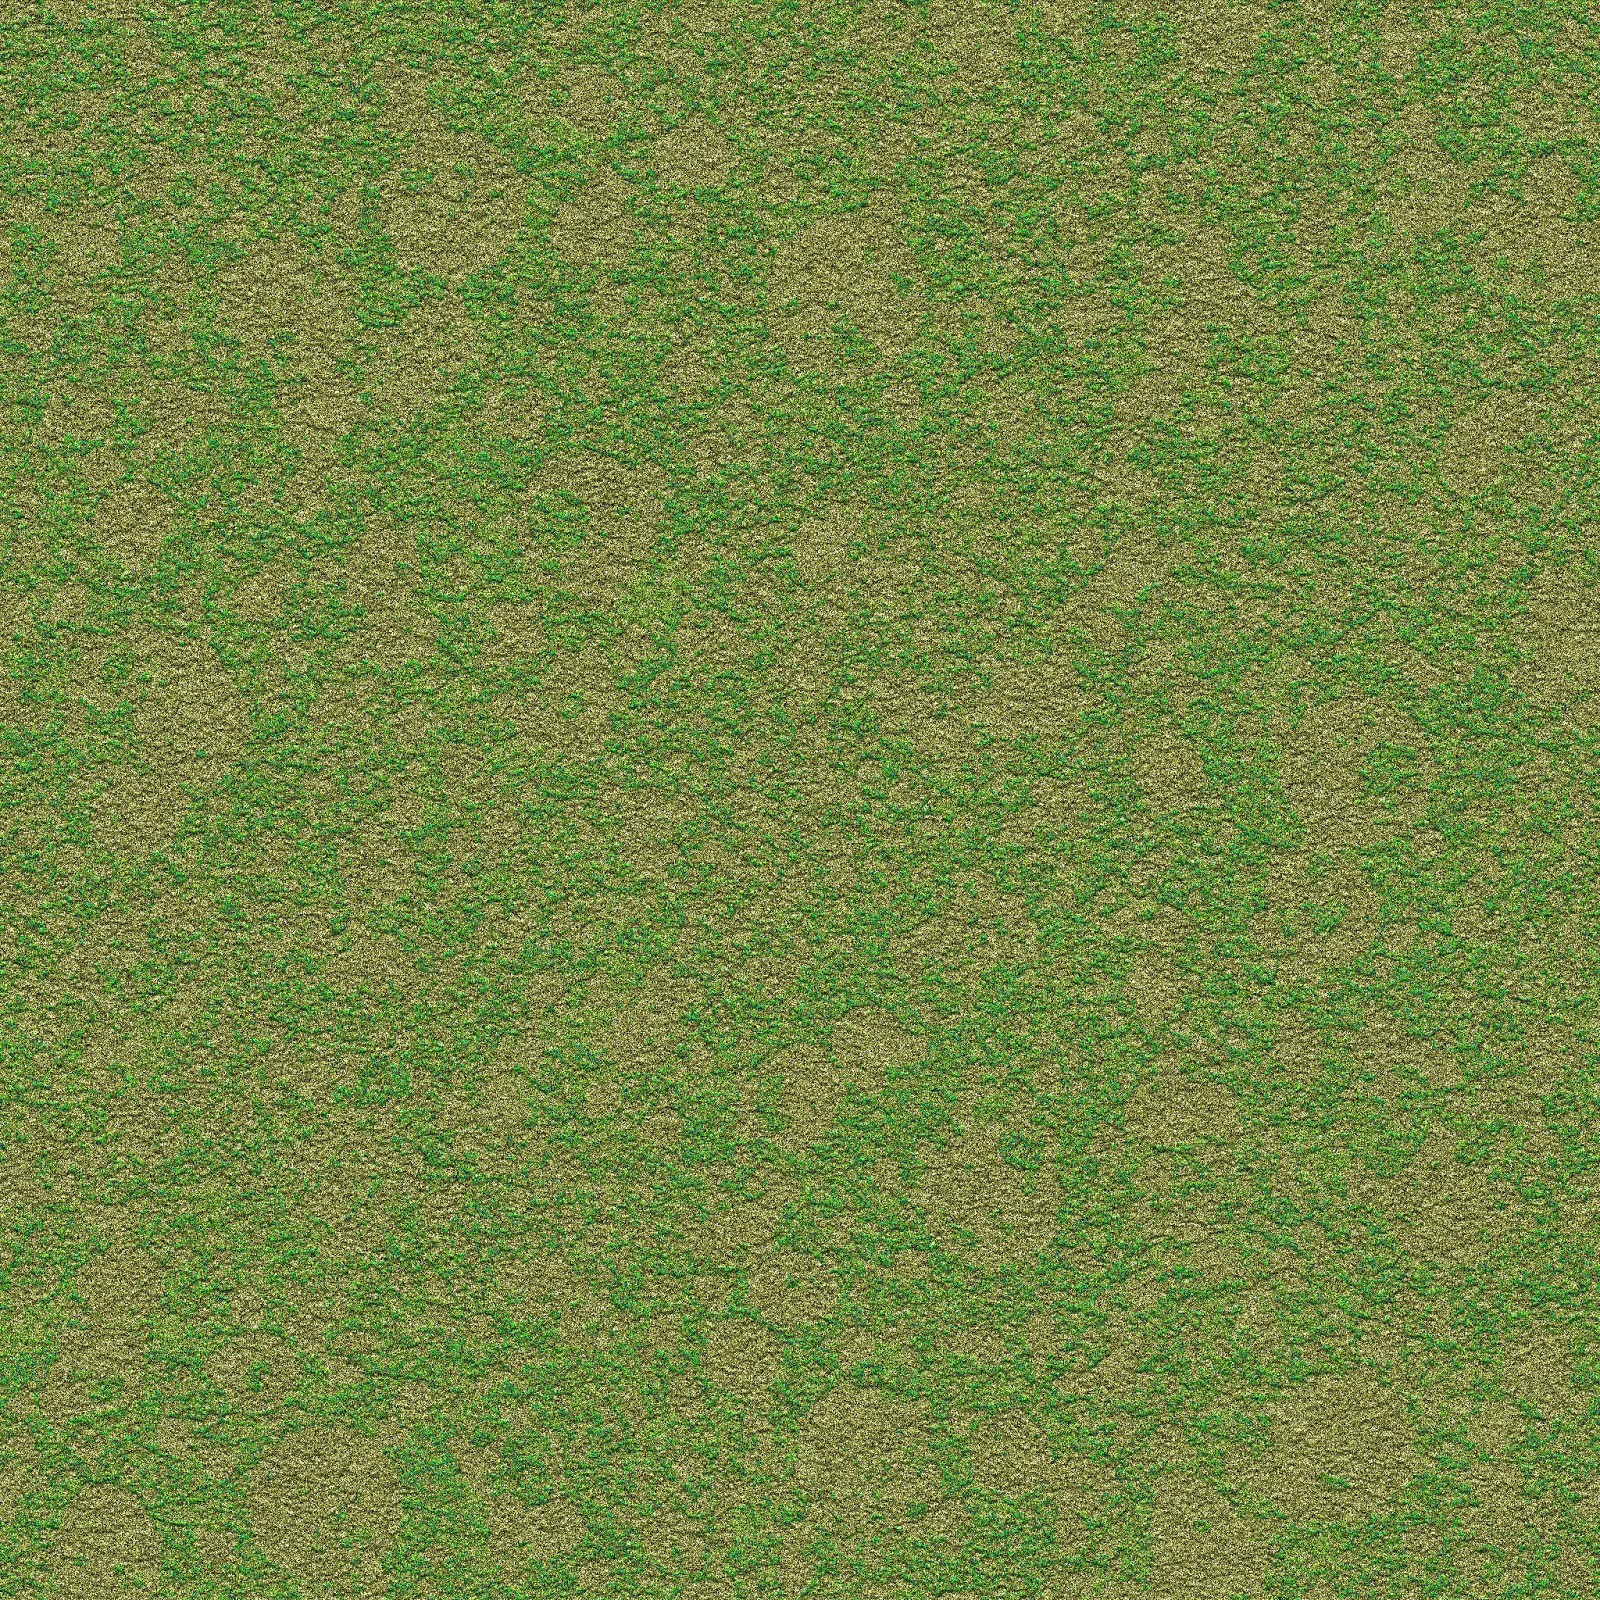 Dark_patch_april11_Green_grass_ground_land_dirt_aerial_top_seamless_texture